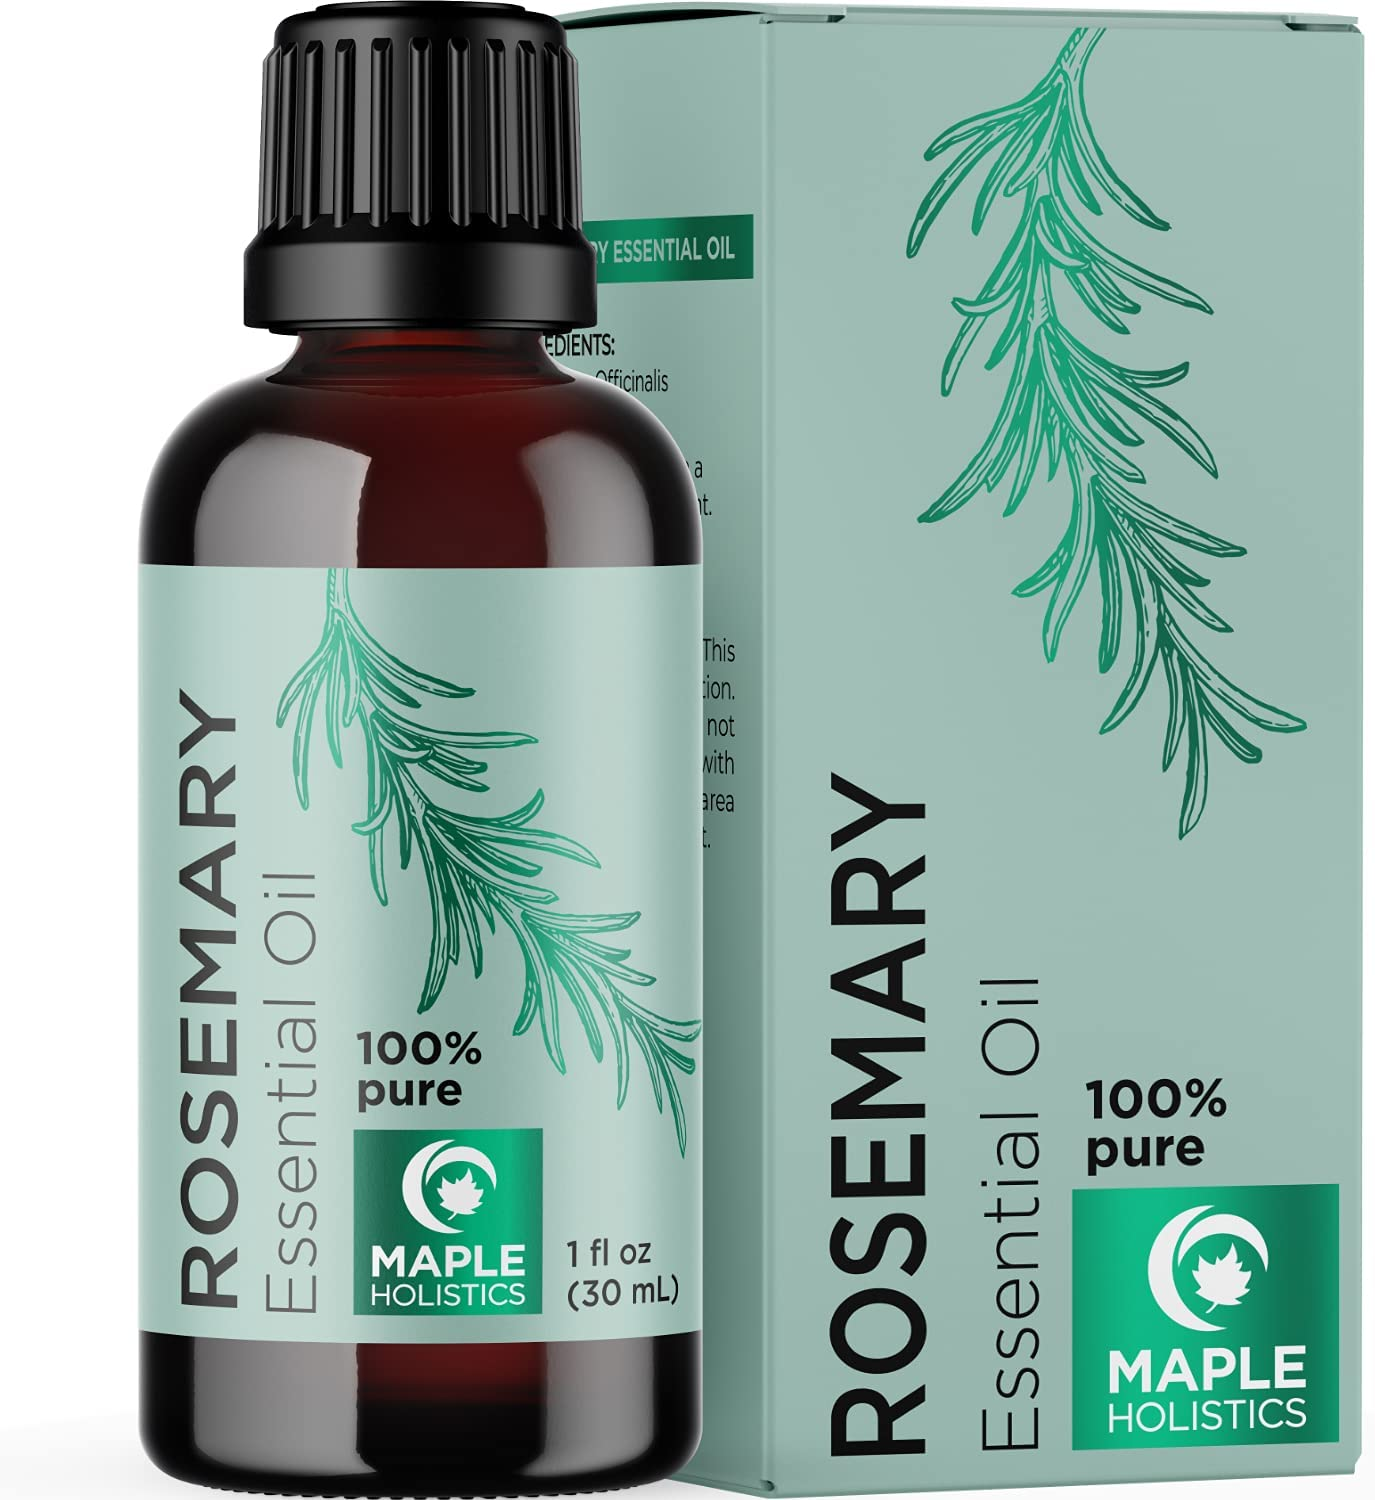 Rosemary Essential Oils Therapeutic Grade - Pure Rosemary Oil for Hair Skin and Nails - Rosemary Essential Oil for Humidifier and Rosemary Hair Oil for Dry Scalp with 100% Pure Essential Oils